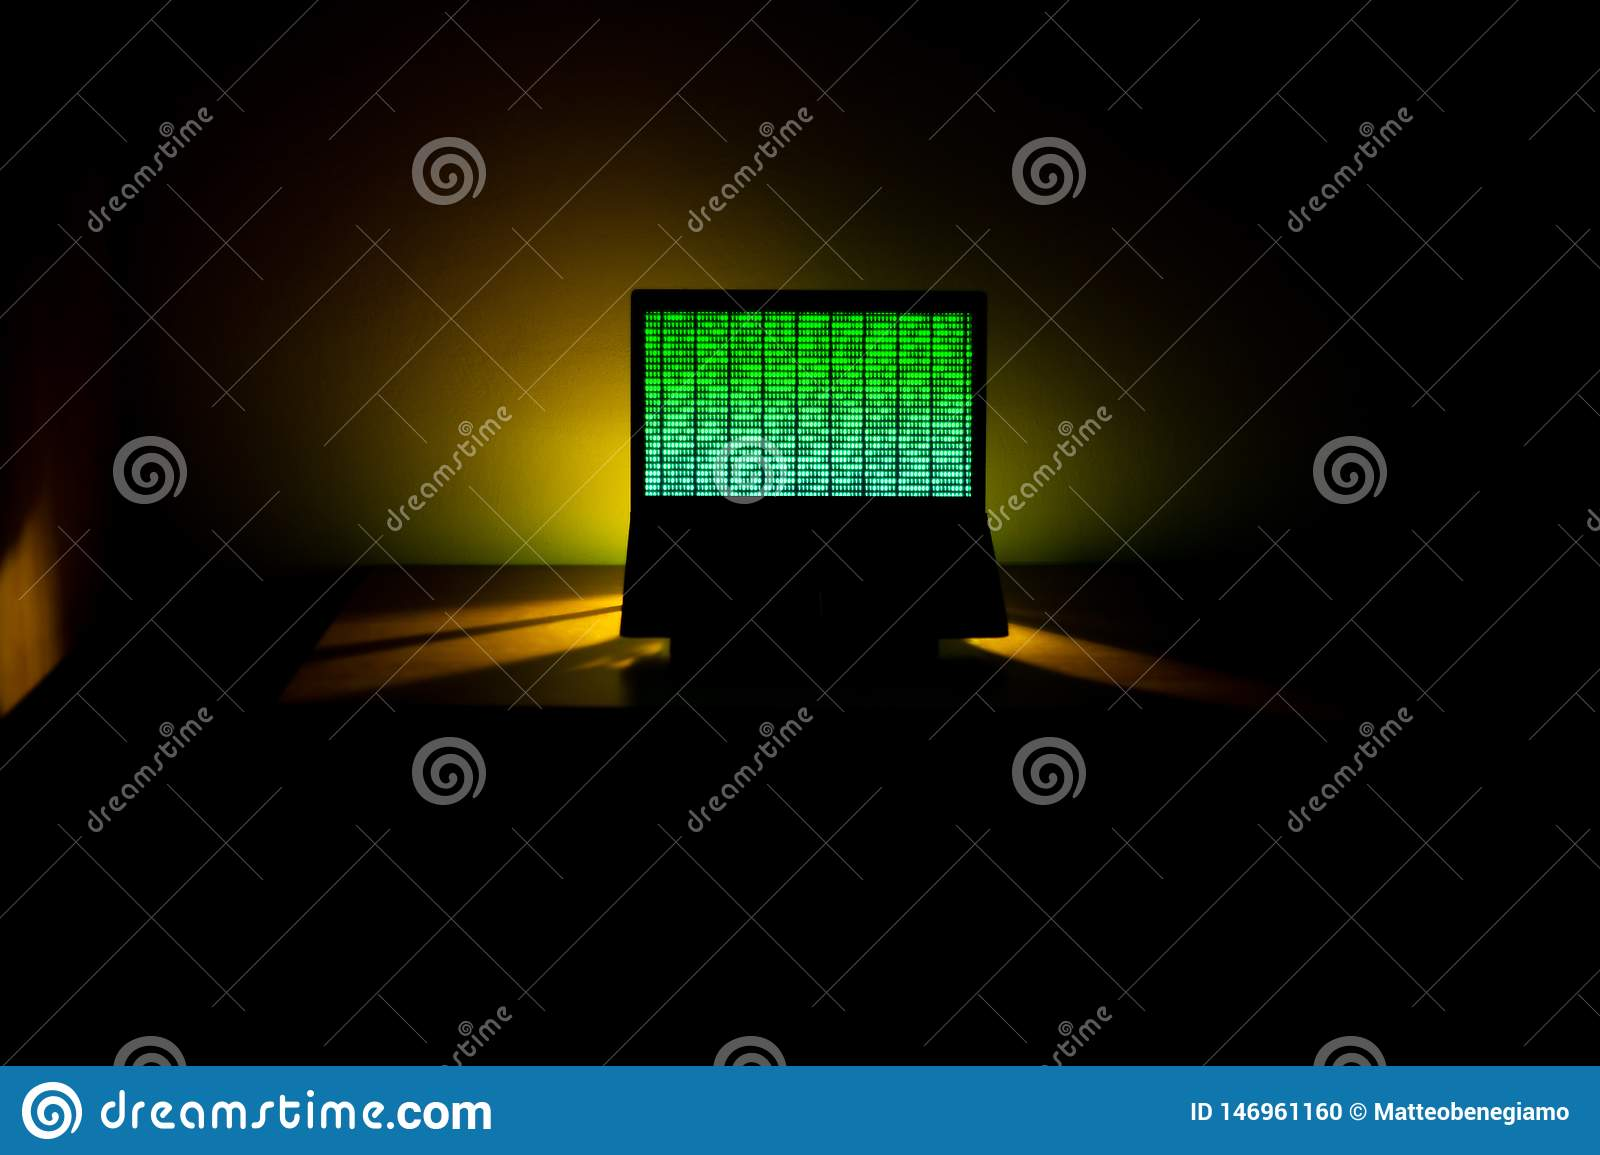 Hacking. Computer Data Processing. Binary Code on the Screen.